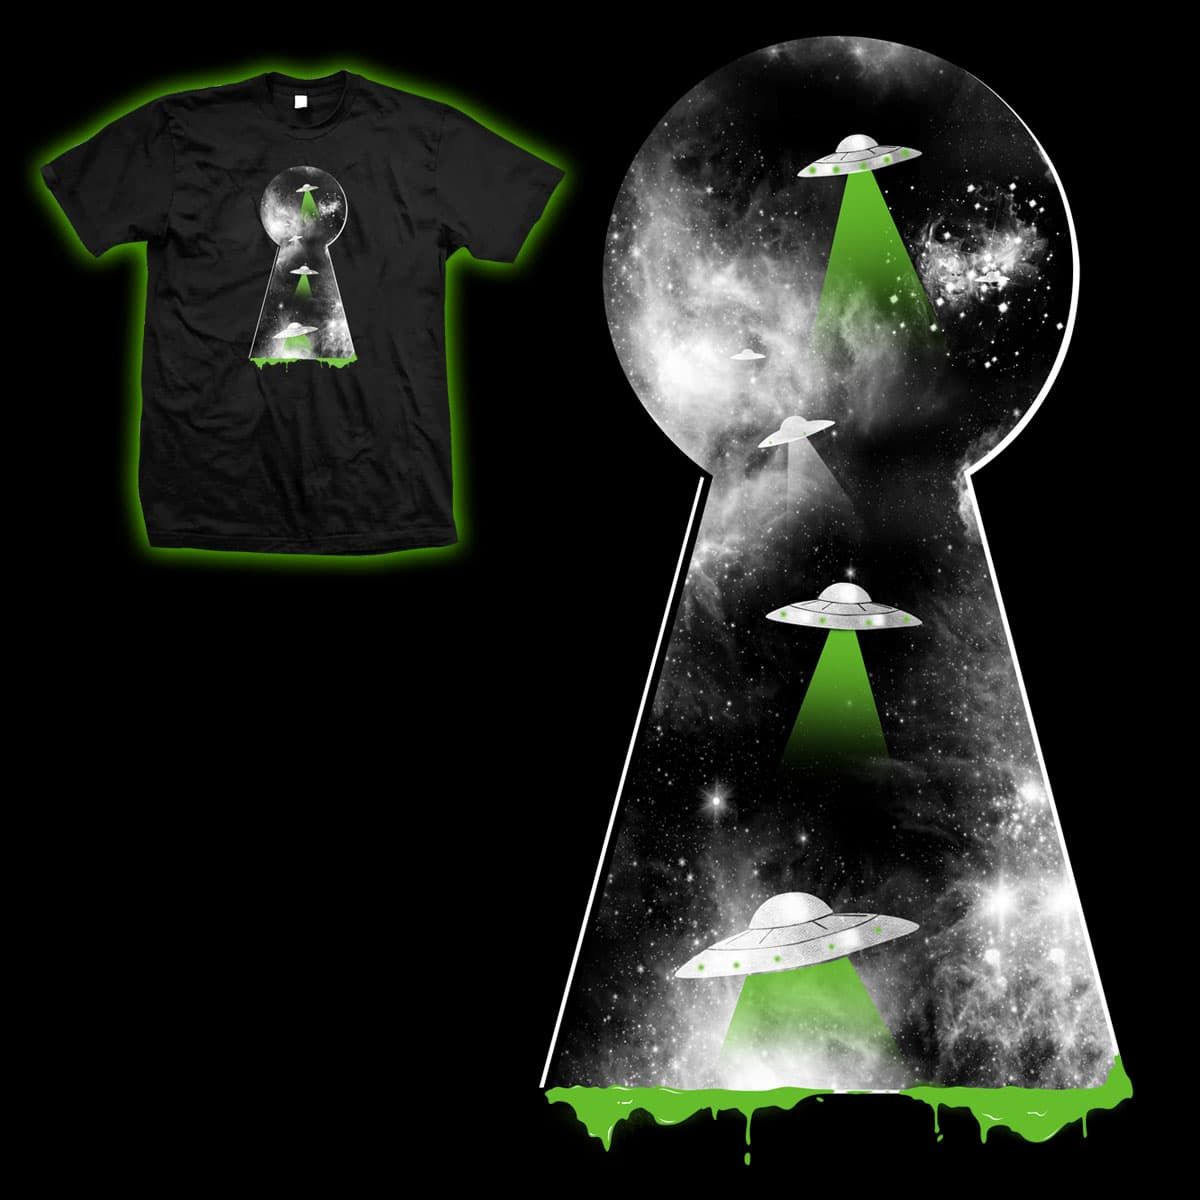 radiations by mainial on Threadless